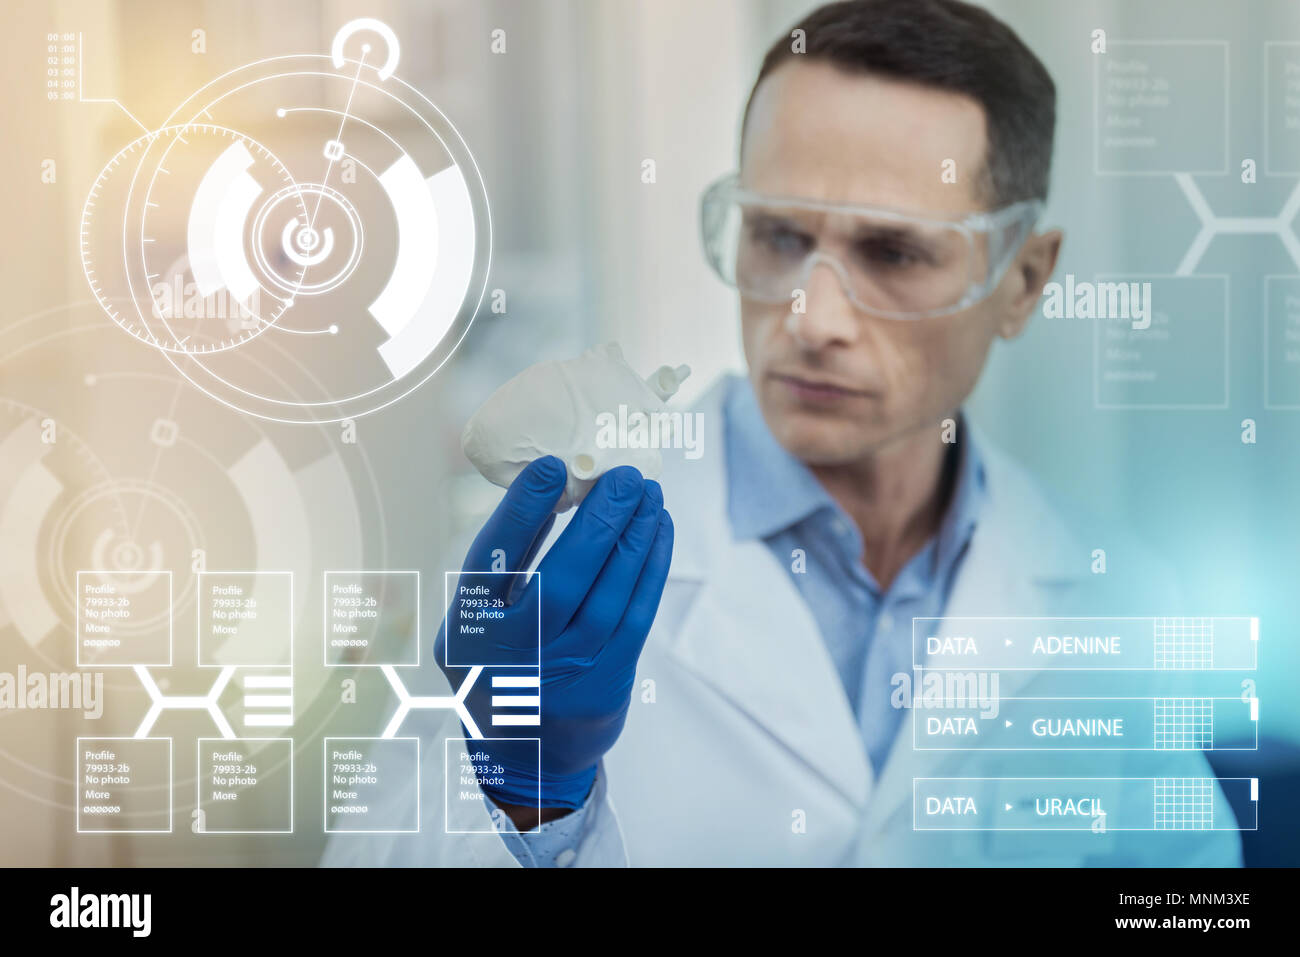 Worried doctor frowning and looking at the realistic miniature heart - Stock Image